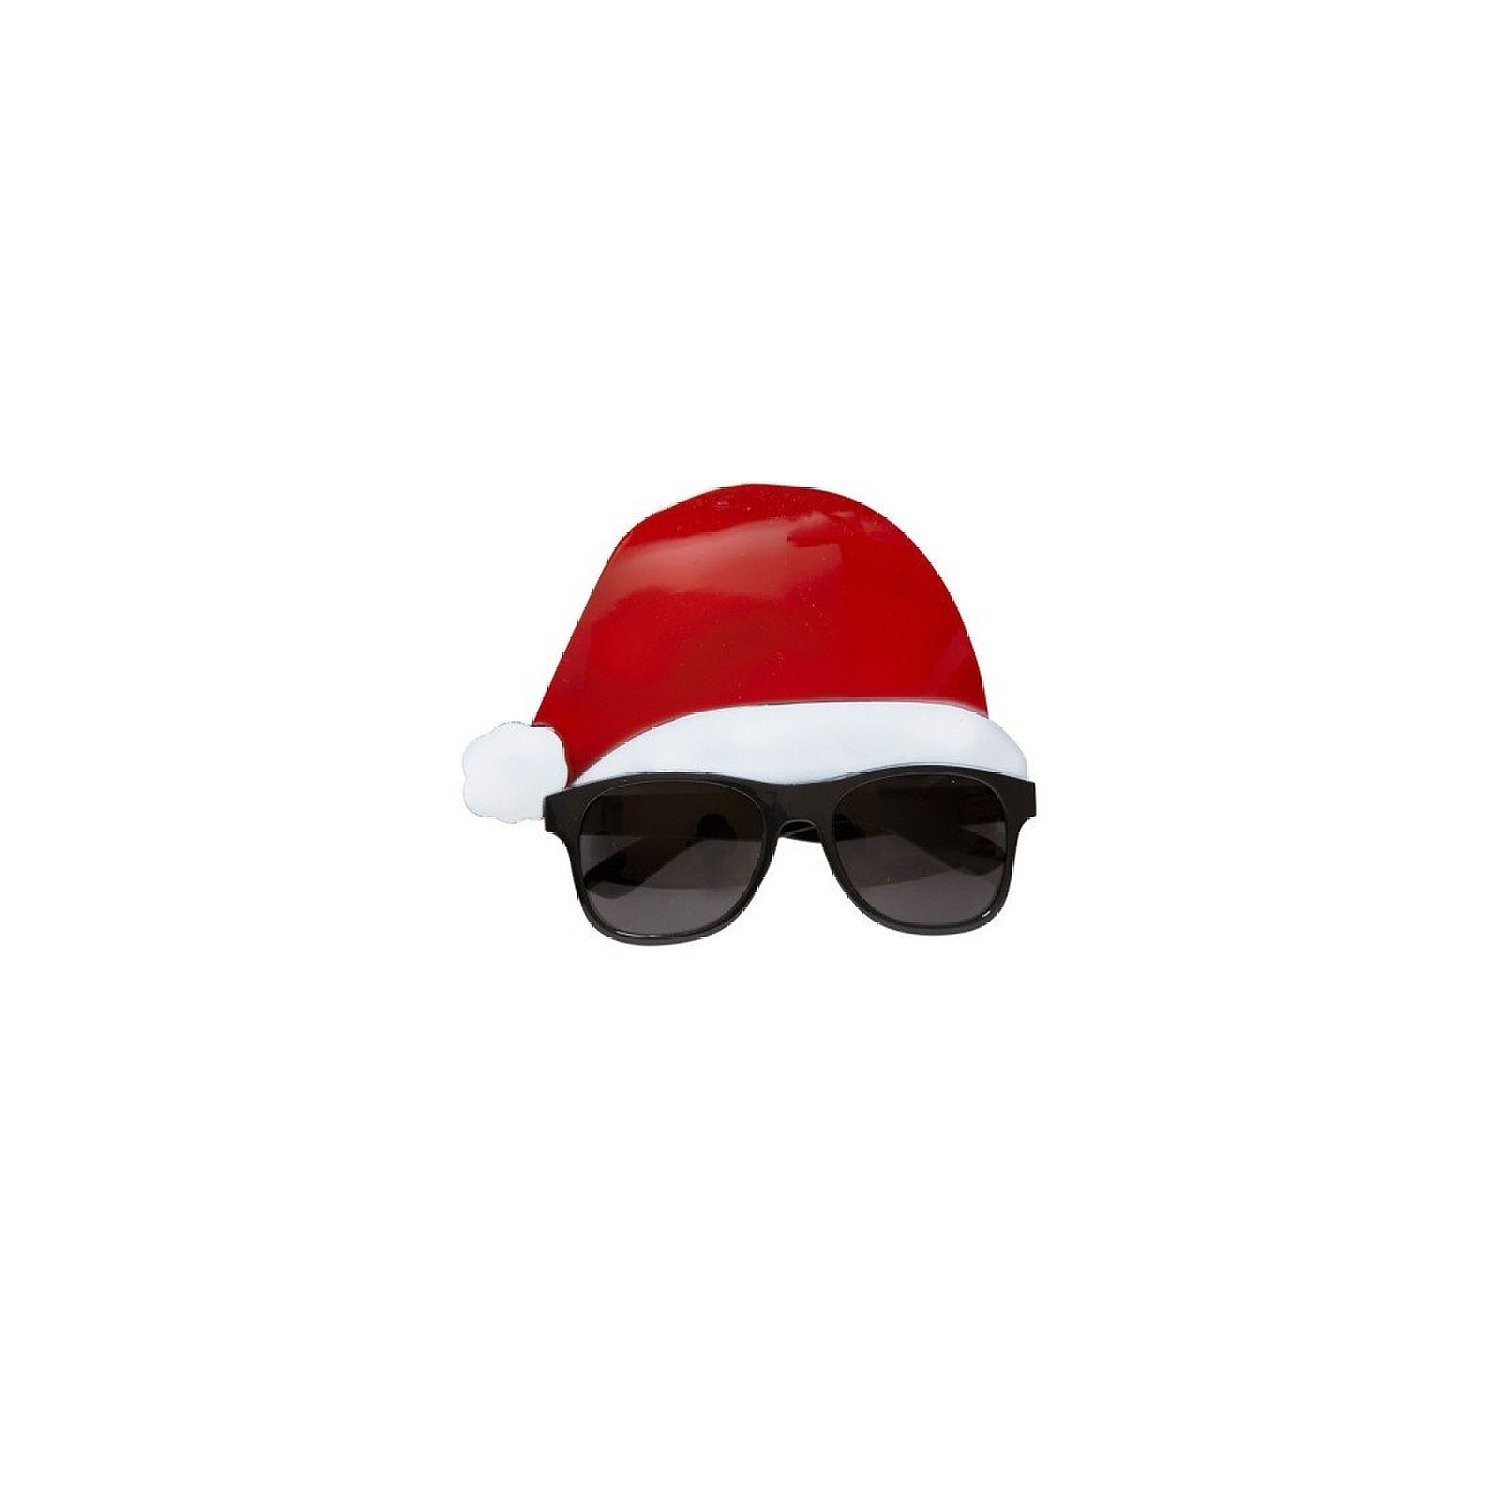 SANTA CLAUS SUNGLASSES